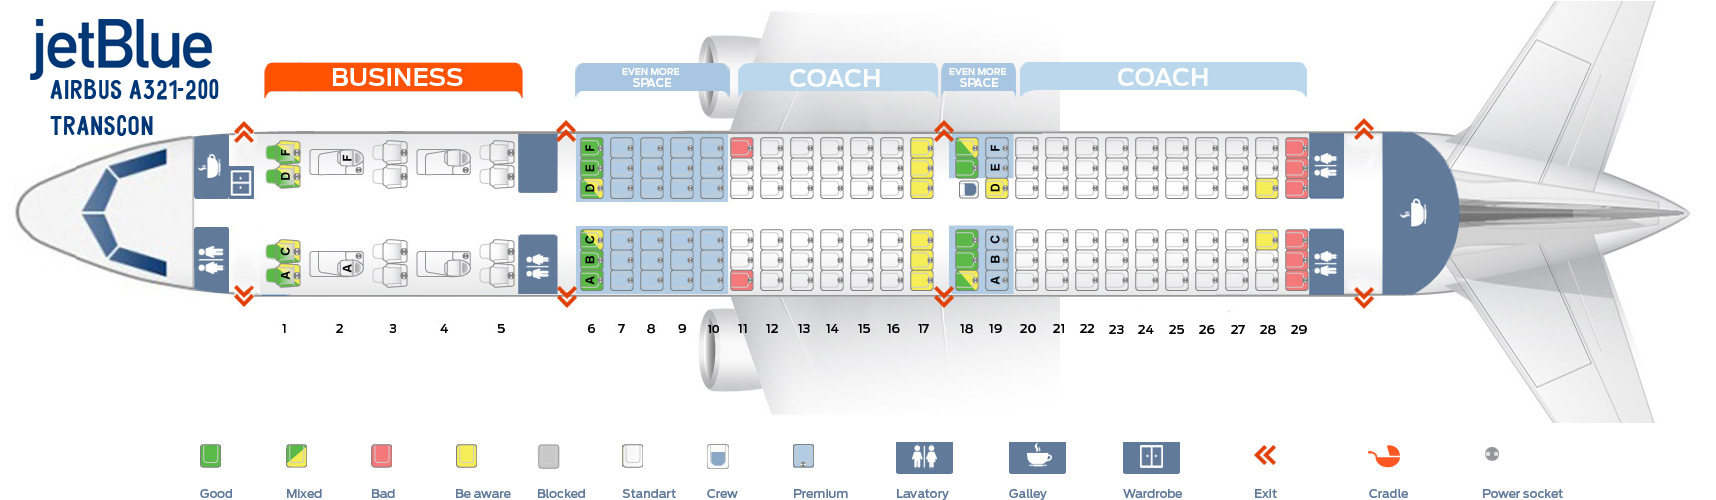 Jetblue Airways Seat map Airbus A321-200 Transcon